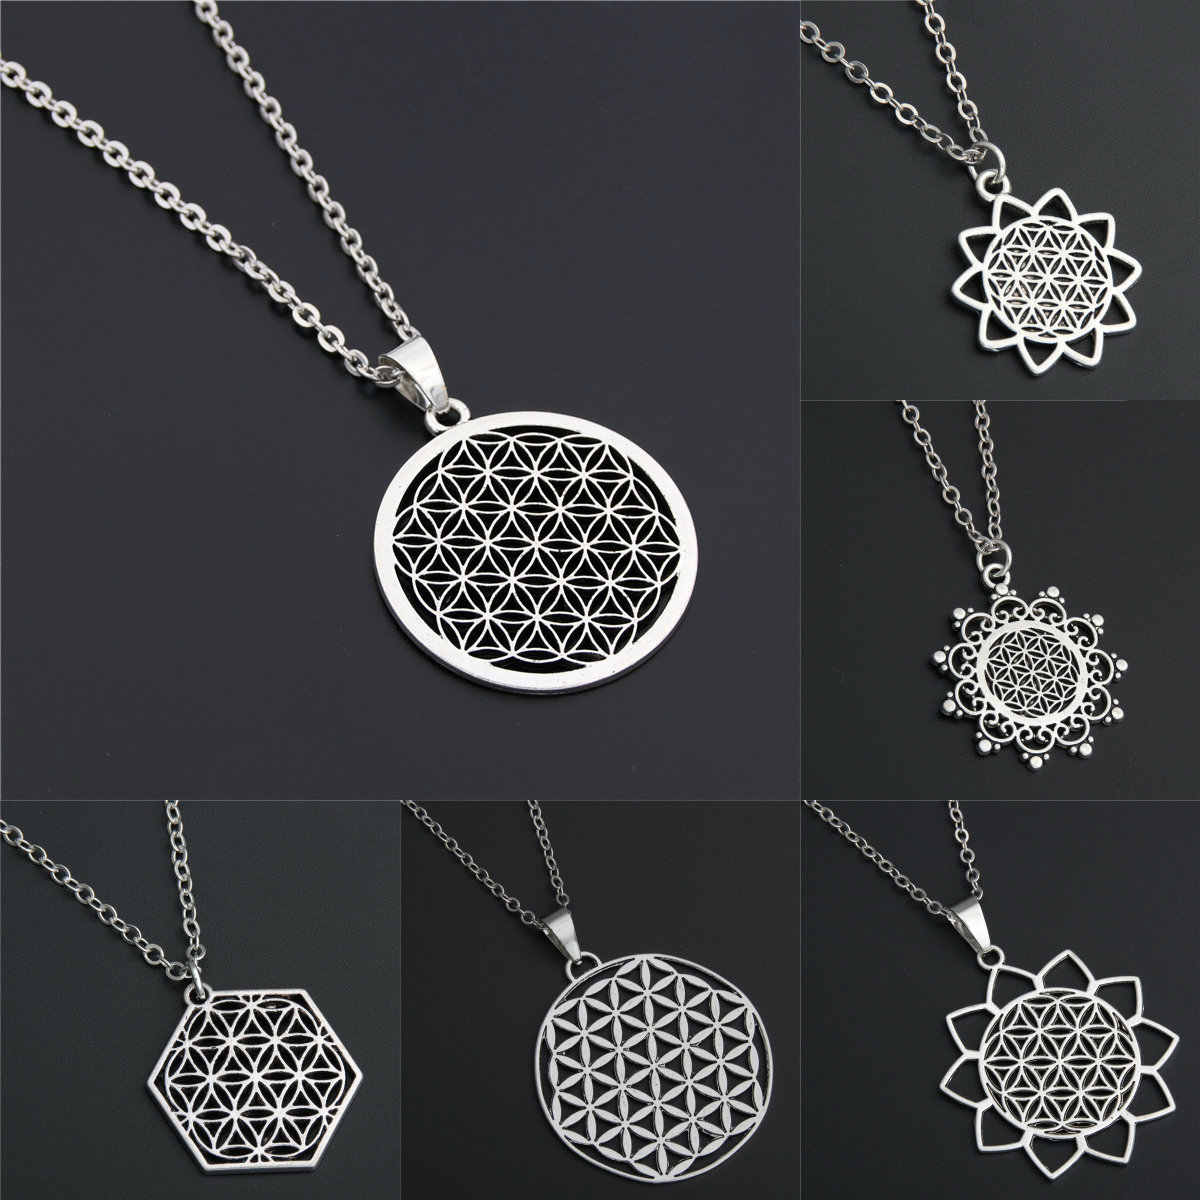 1pc Dropshipping Seed Of Life Pendant Flower Of Life Necklace  Jewelry Sacred Geometry Women Accessories Birthday Gift